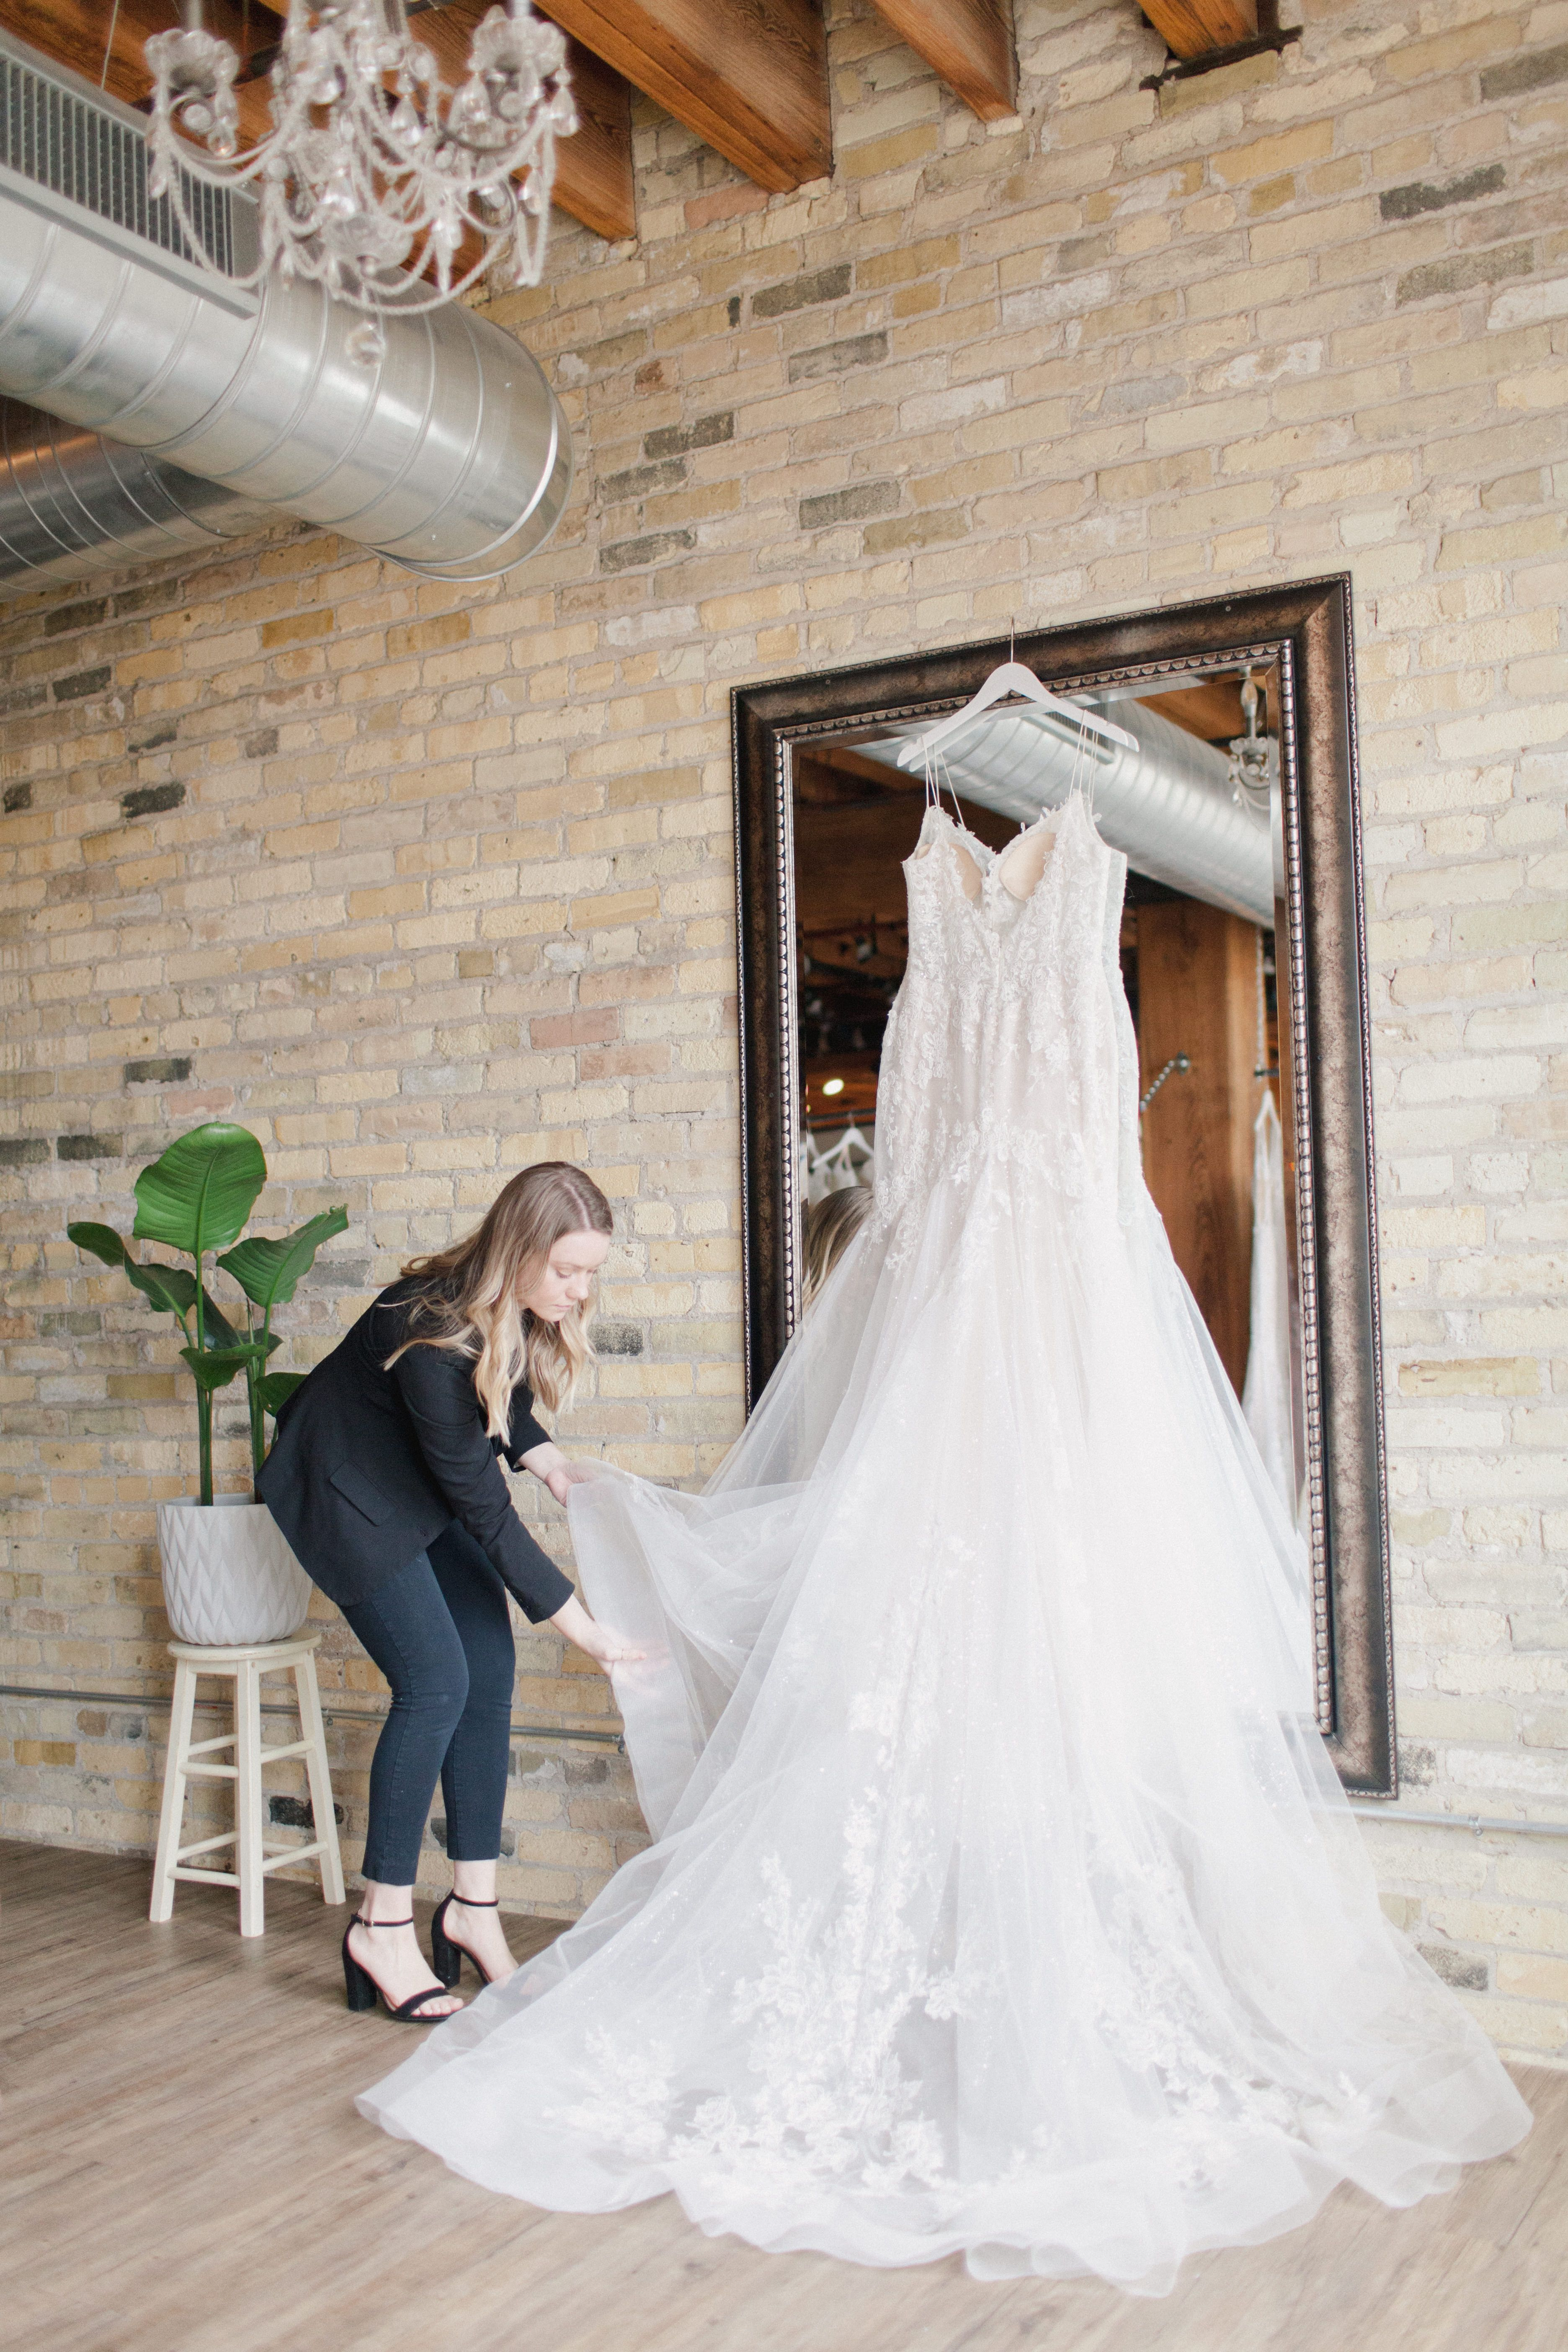 Charming Bridal Boutique With Cream City Brick Historic Wooden Beams Sweeping Views Of The City And Rows Of Romanti